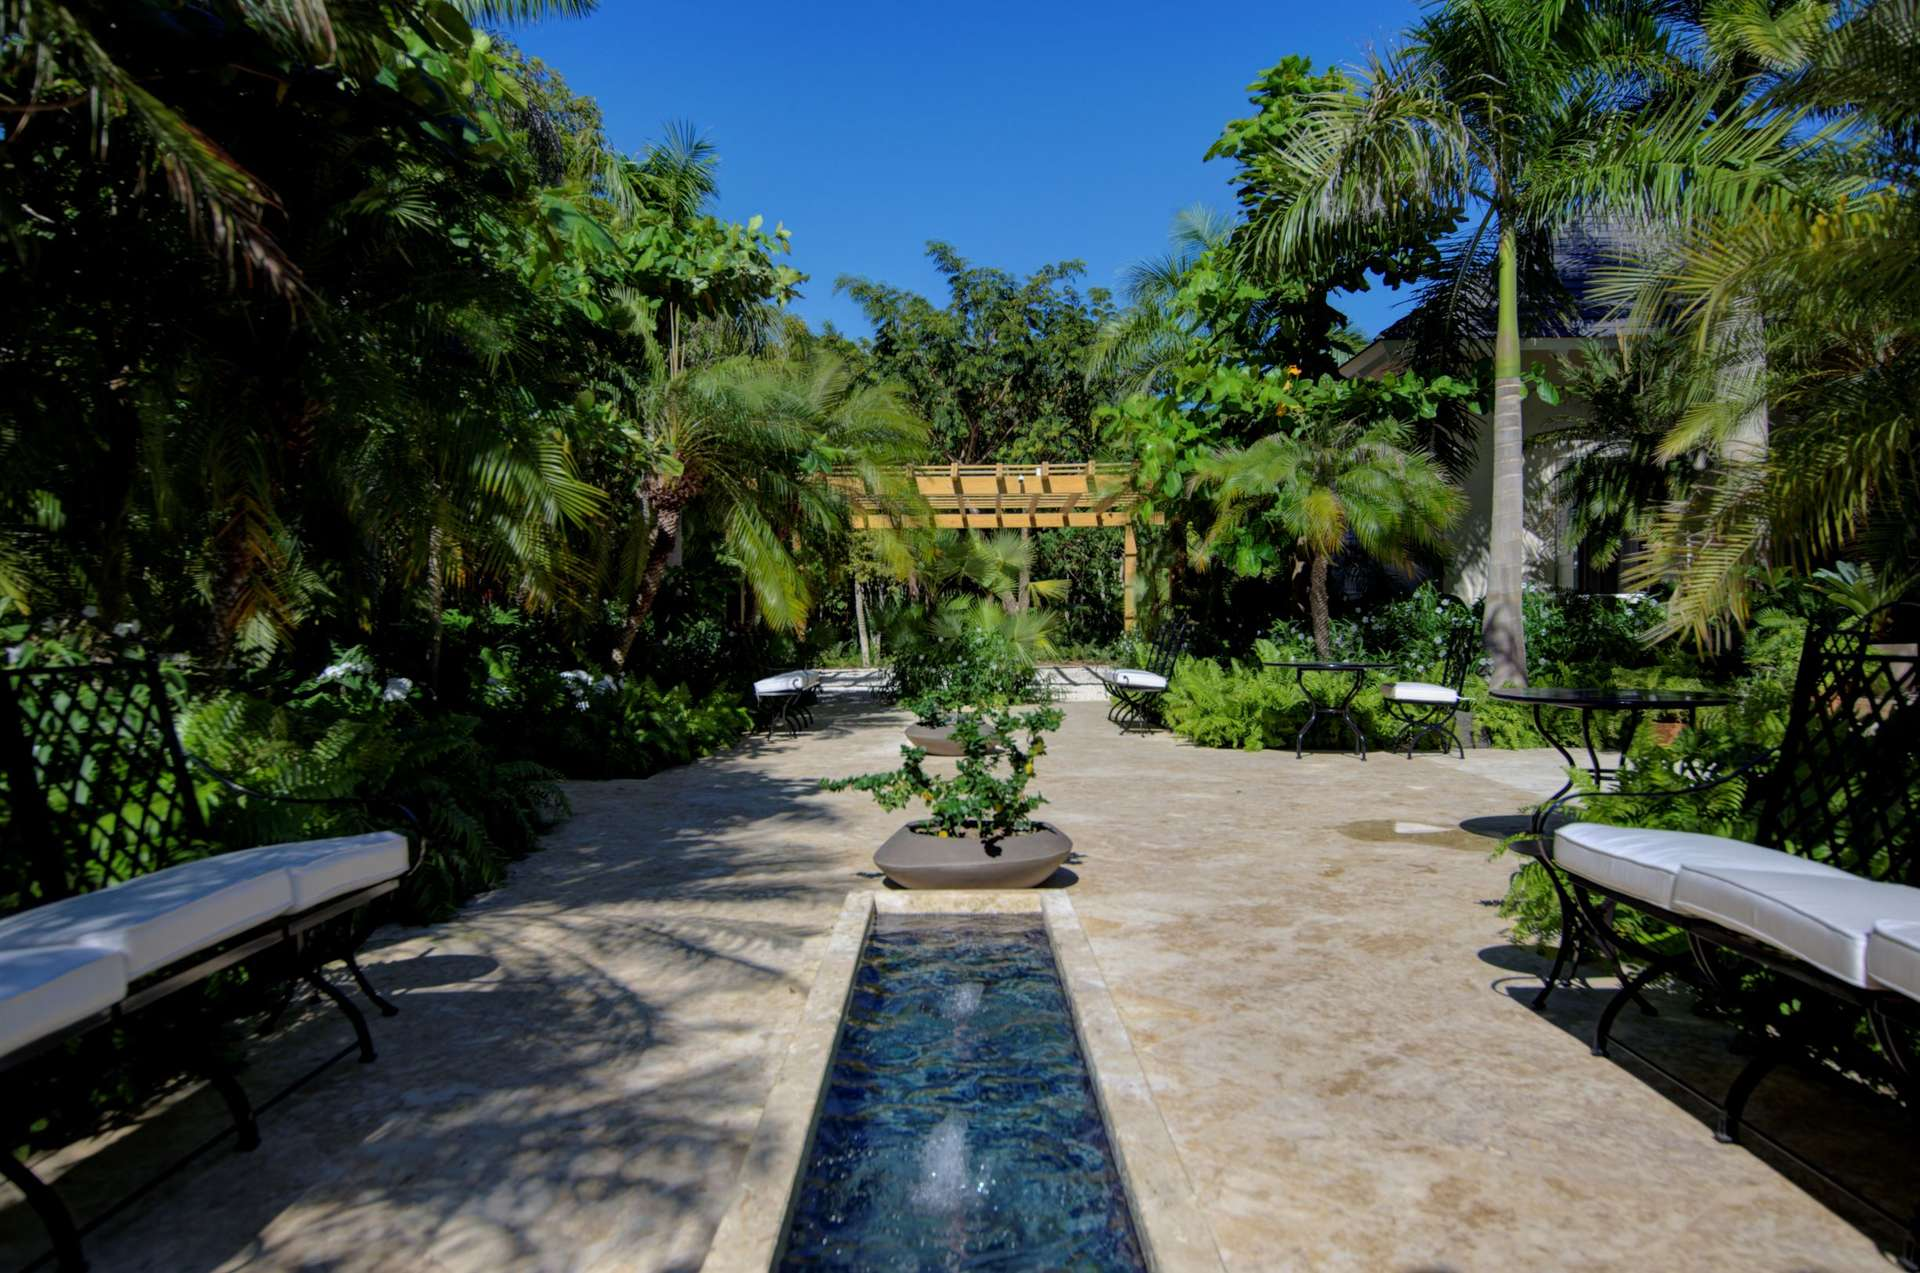 Luxury villa rentals caribbean - Dominican republic - Punta cana - Punta cana resort and club - Corales 116 - Image 1/20